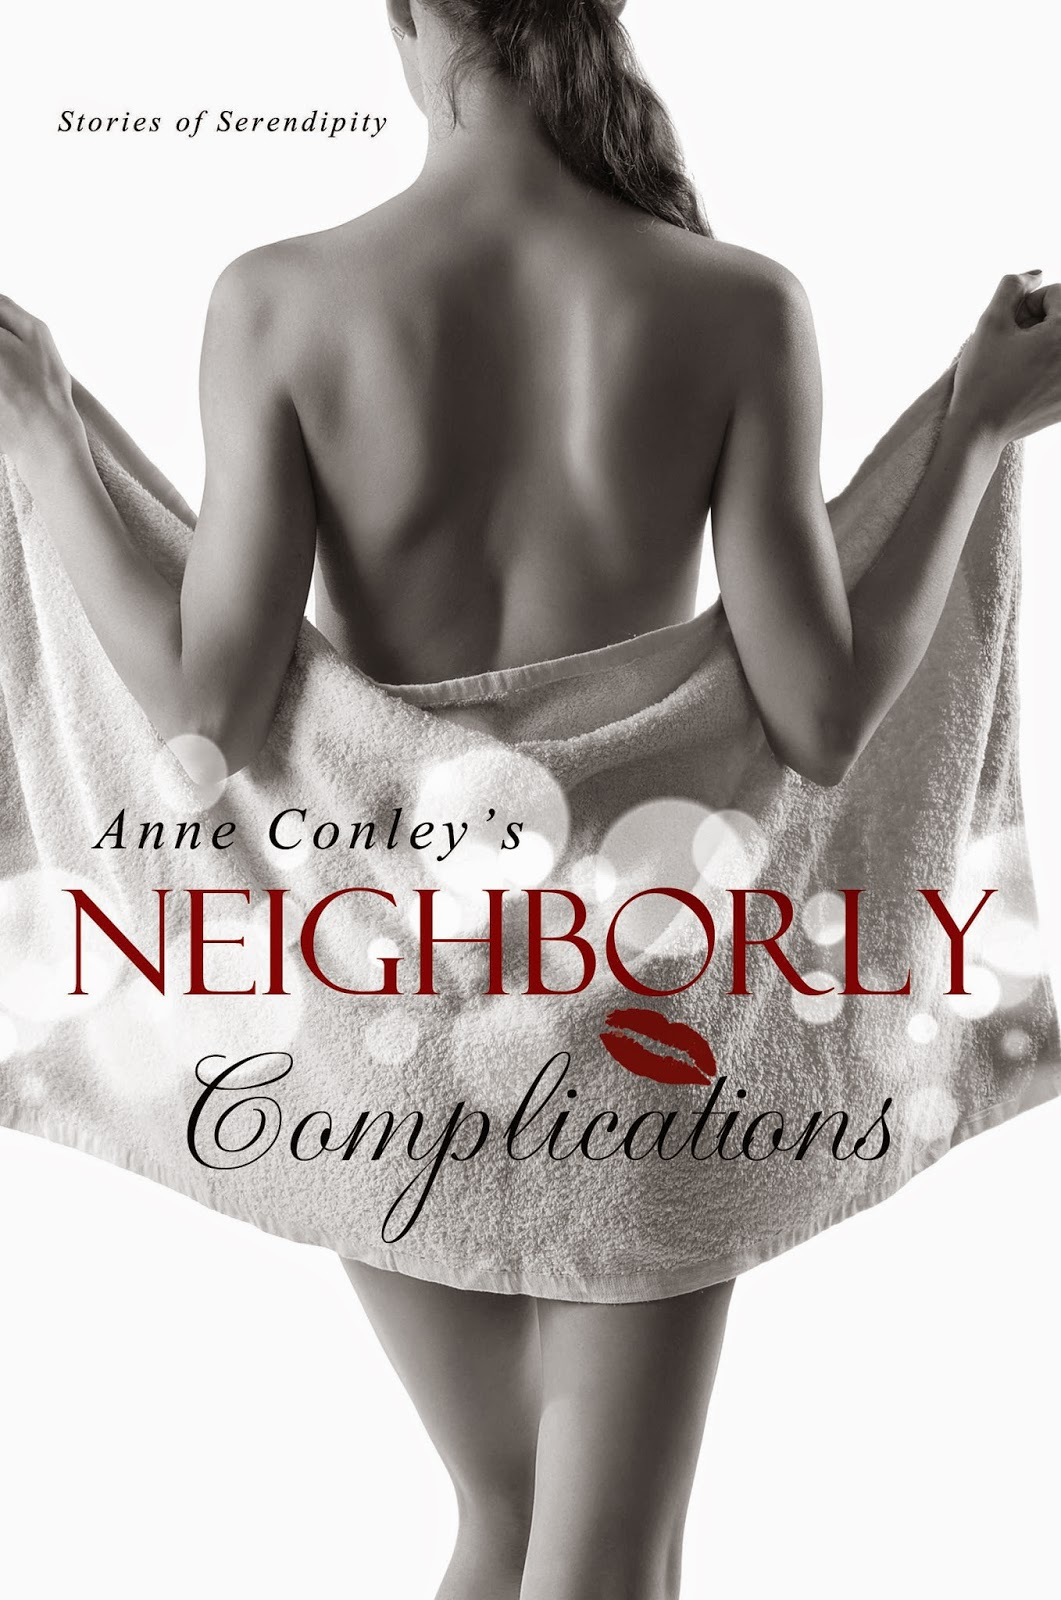 https://www.amazon.com/Neighborly-Complications-Stories-Serendipity-1-ebook/dp/B00B73TIBG/ref=as_sl_pc_tf_til?tag=theconcor-20&linkCode=w00&linkId=INUO6GIXMZZB72JK&creativeASIN=B00B73TIBG